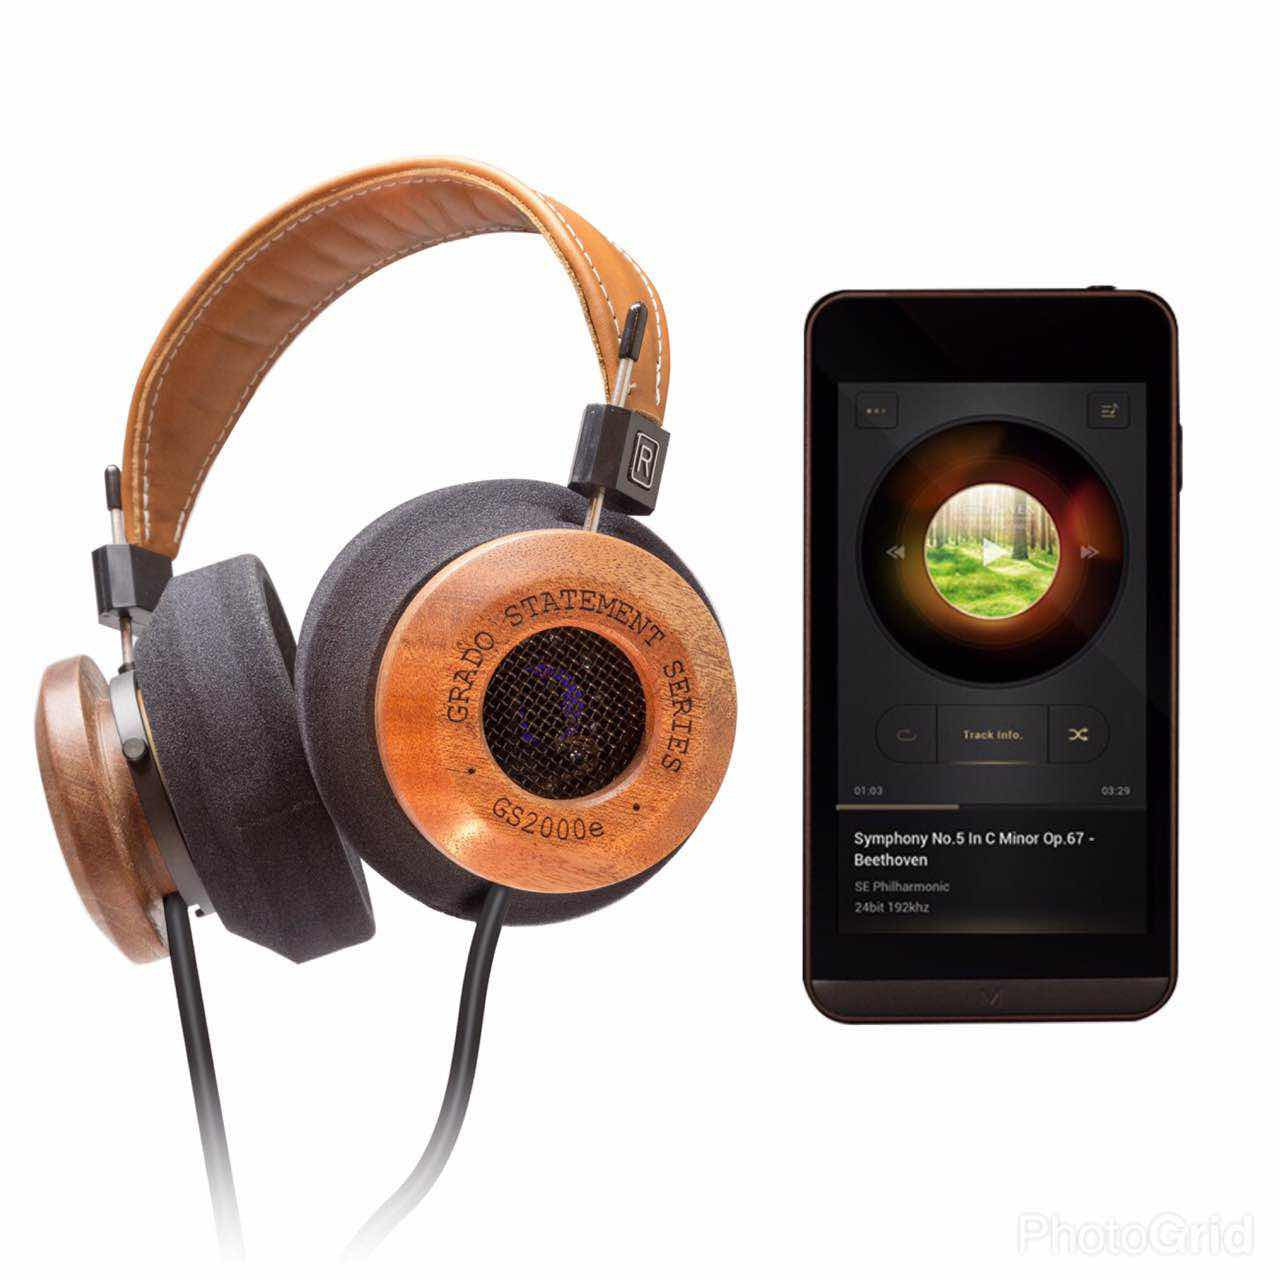 [Jaben Combo] Grado Labs Statement Series GS2000e with FREE Calyx M